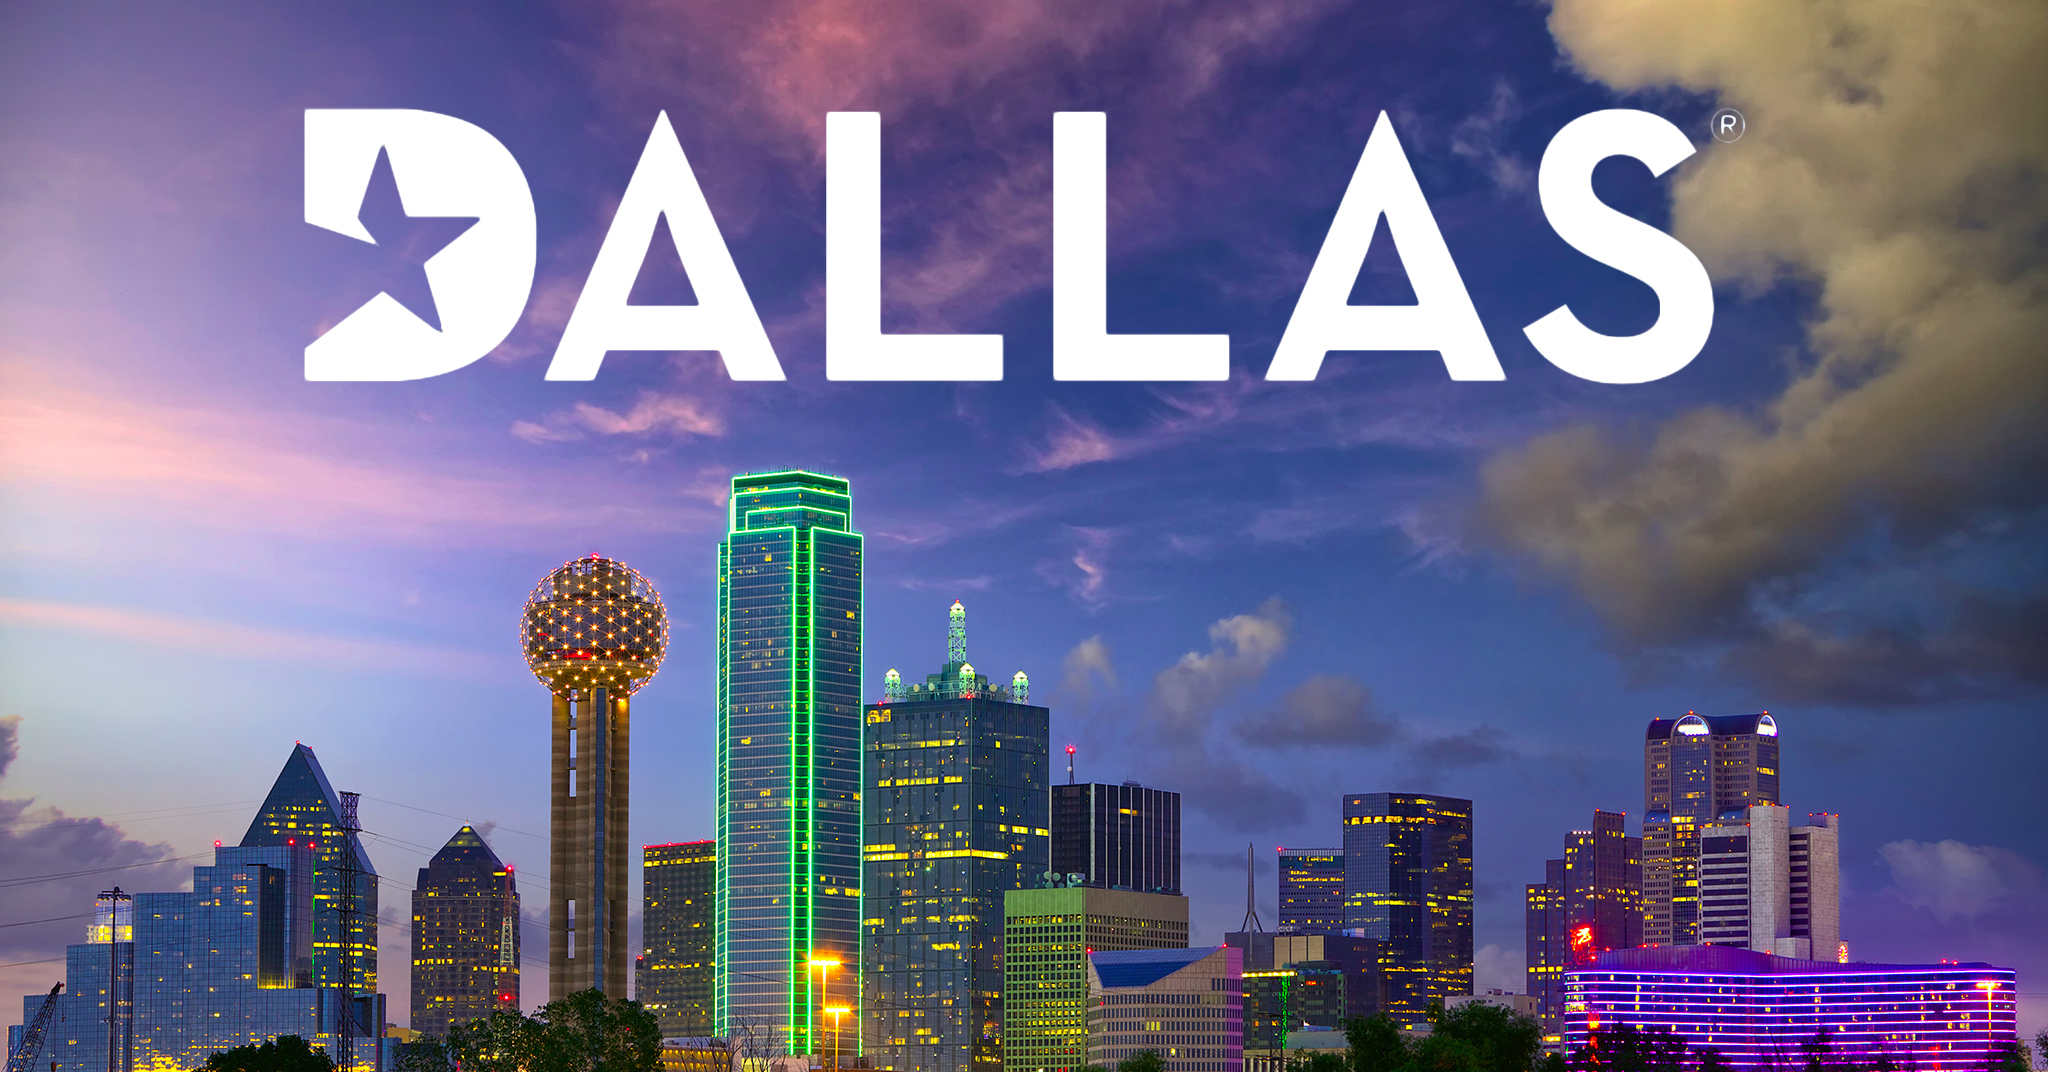 Sign-up for BVN Registration now in Dallas, Texas